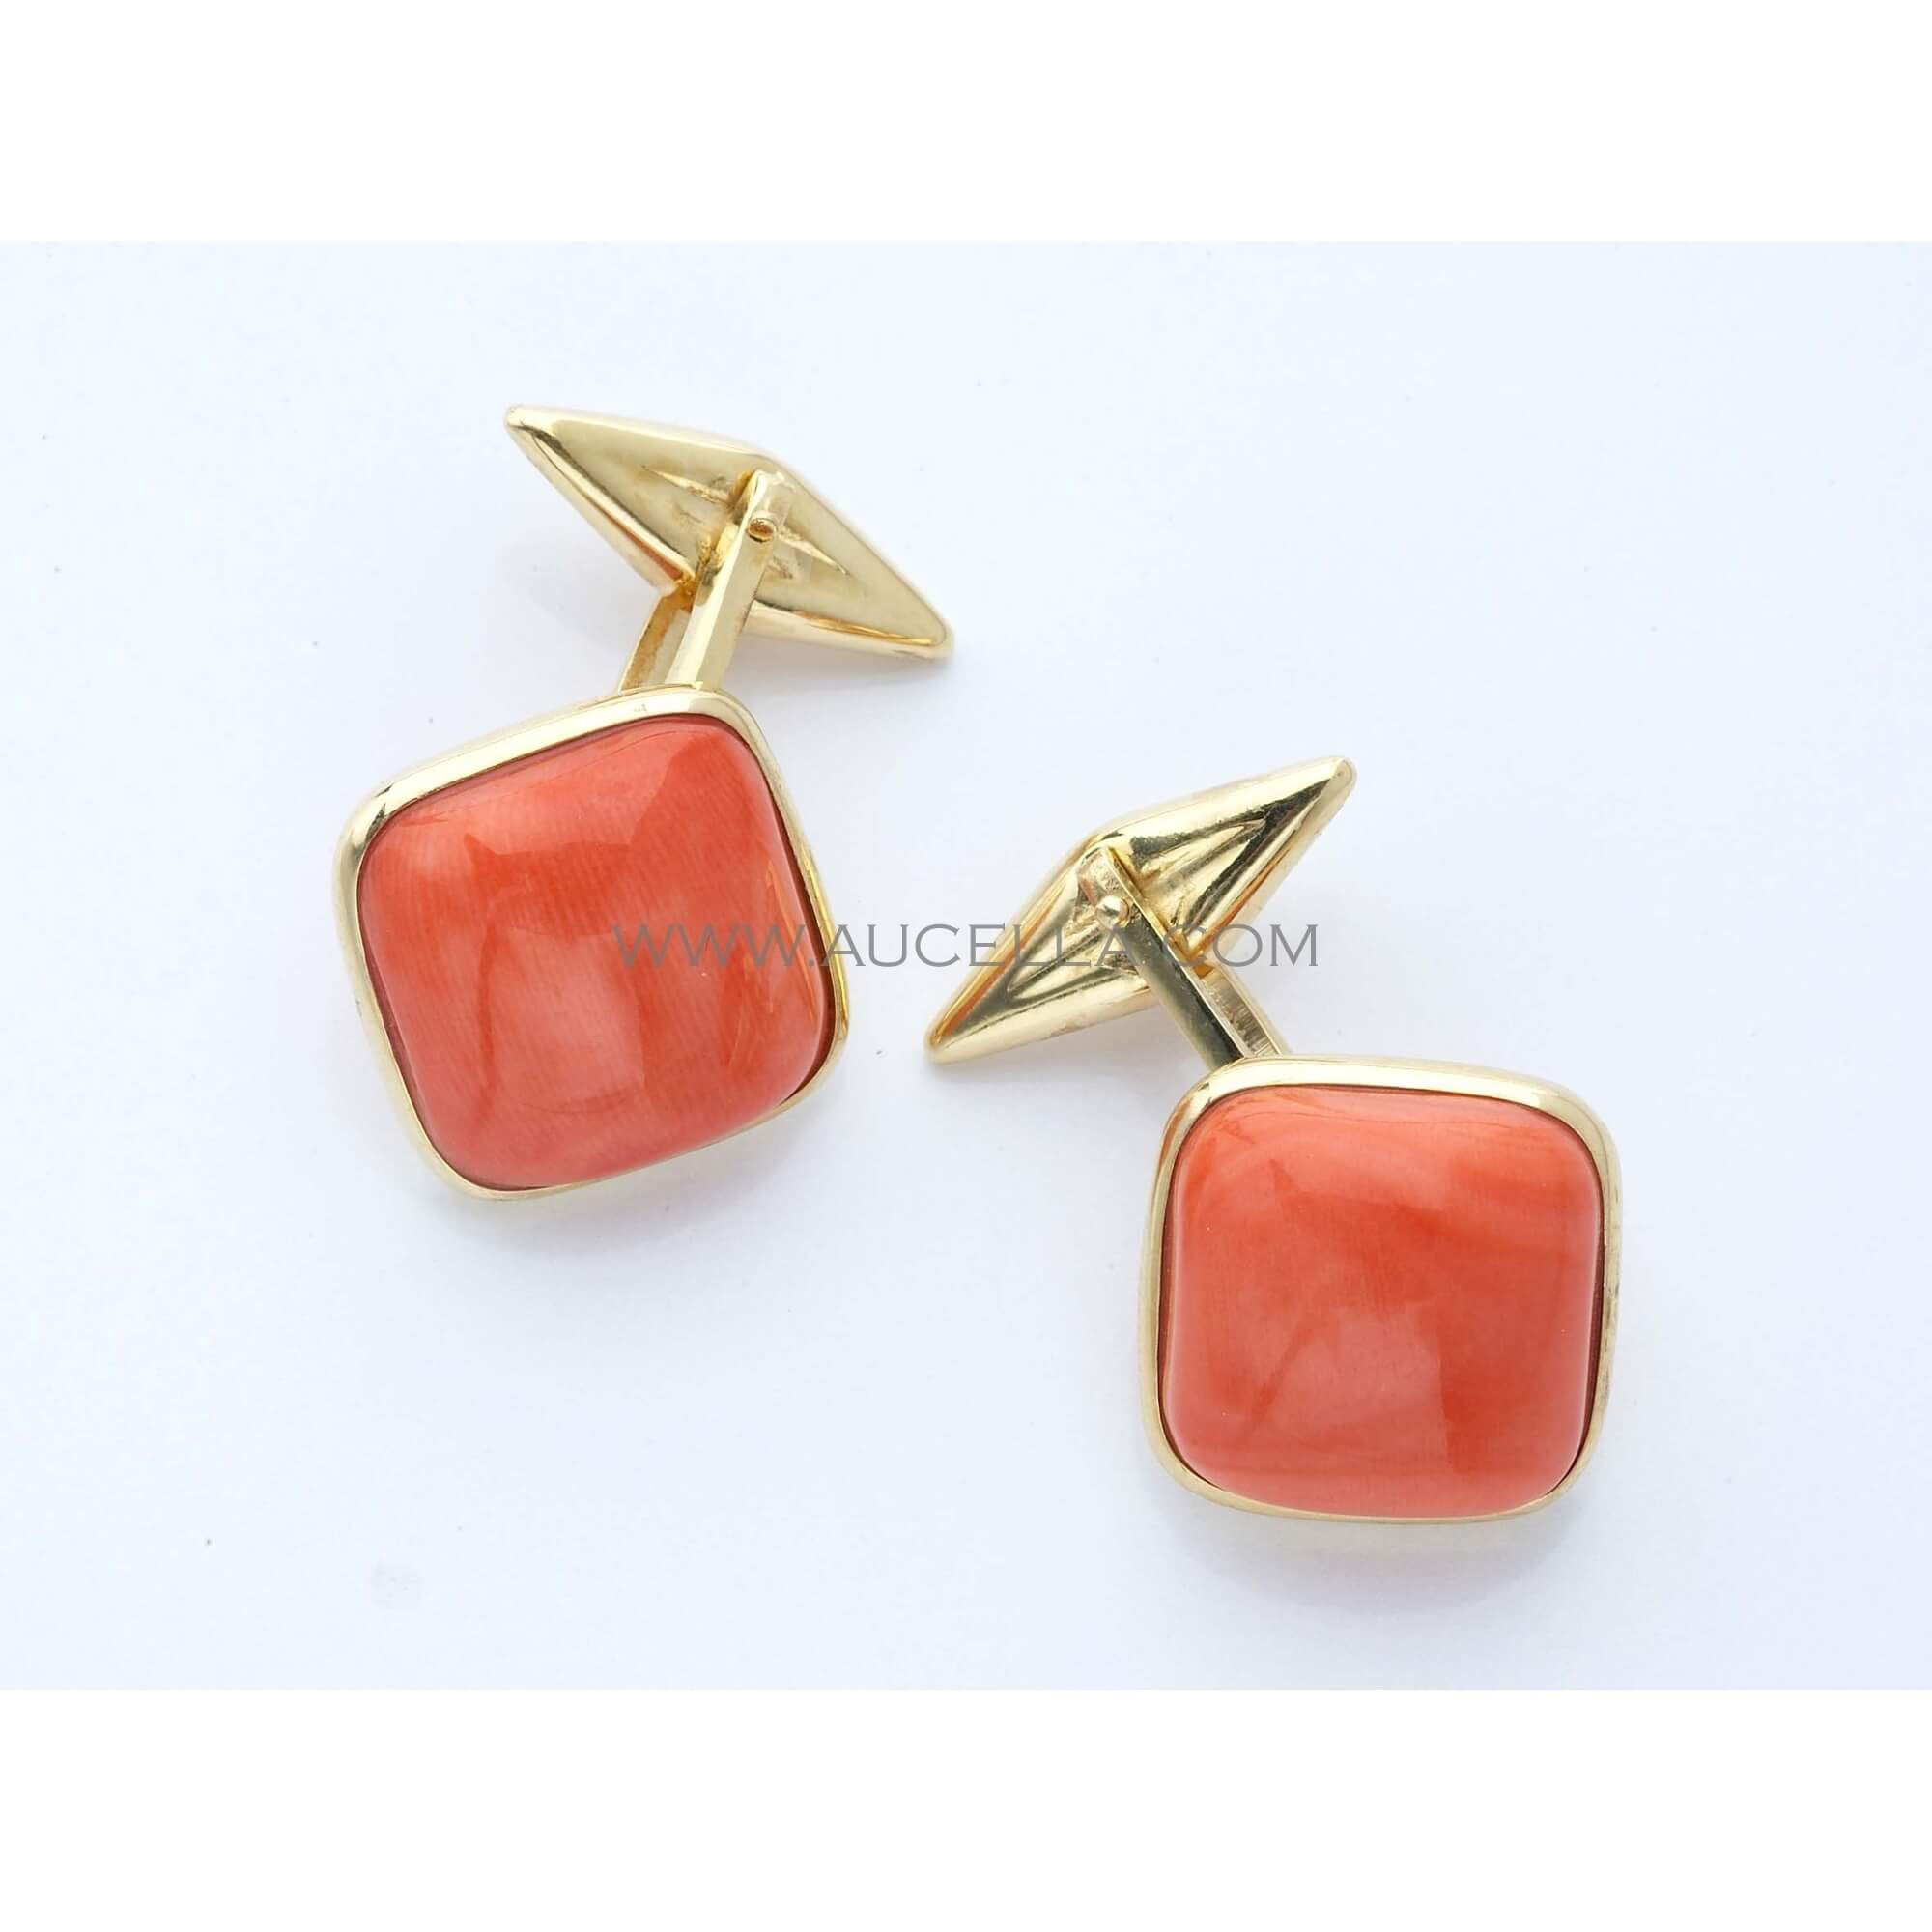 Cufflinks set in gold with momo coral